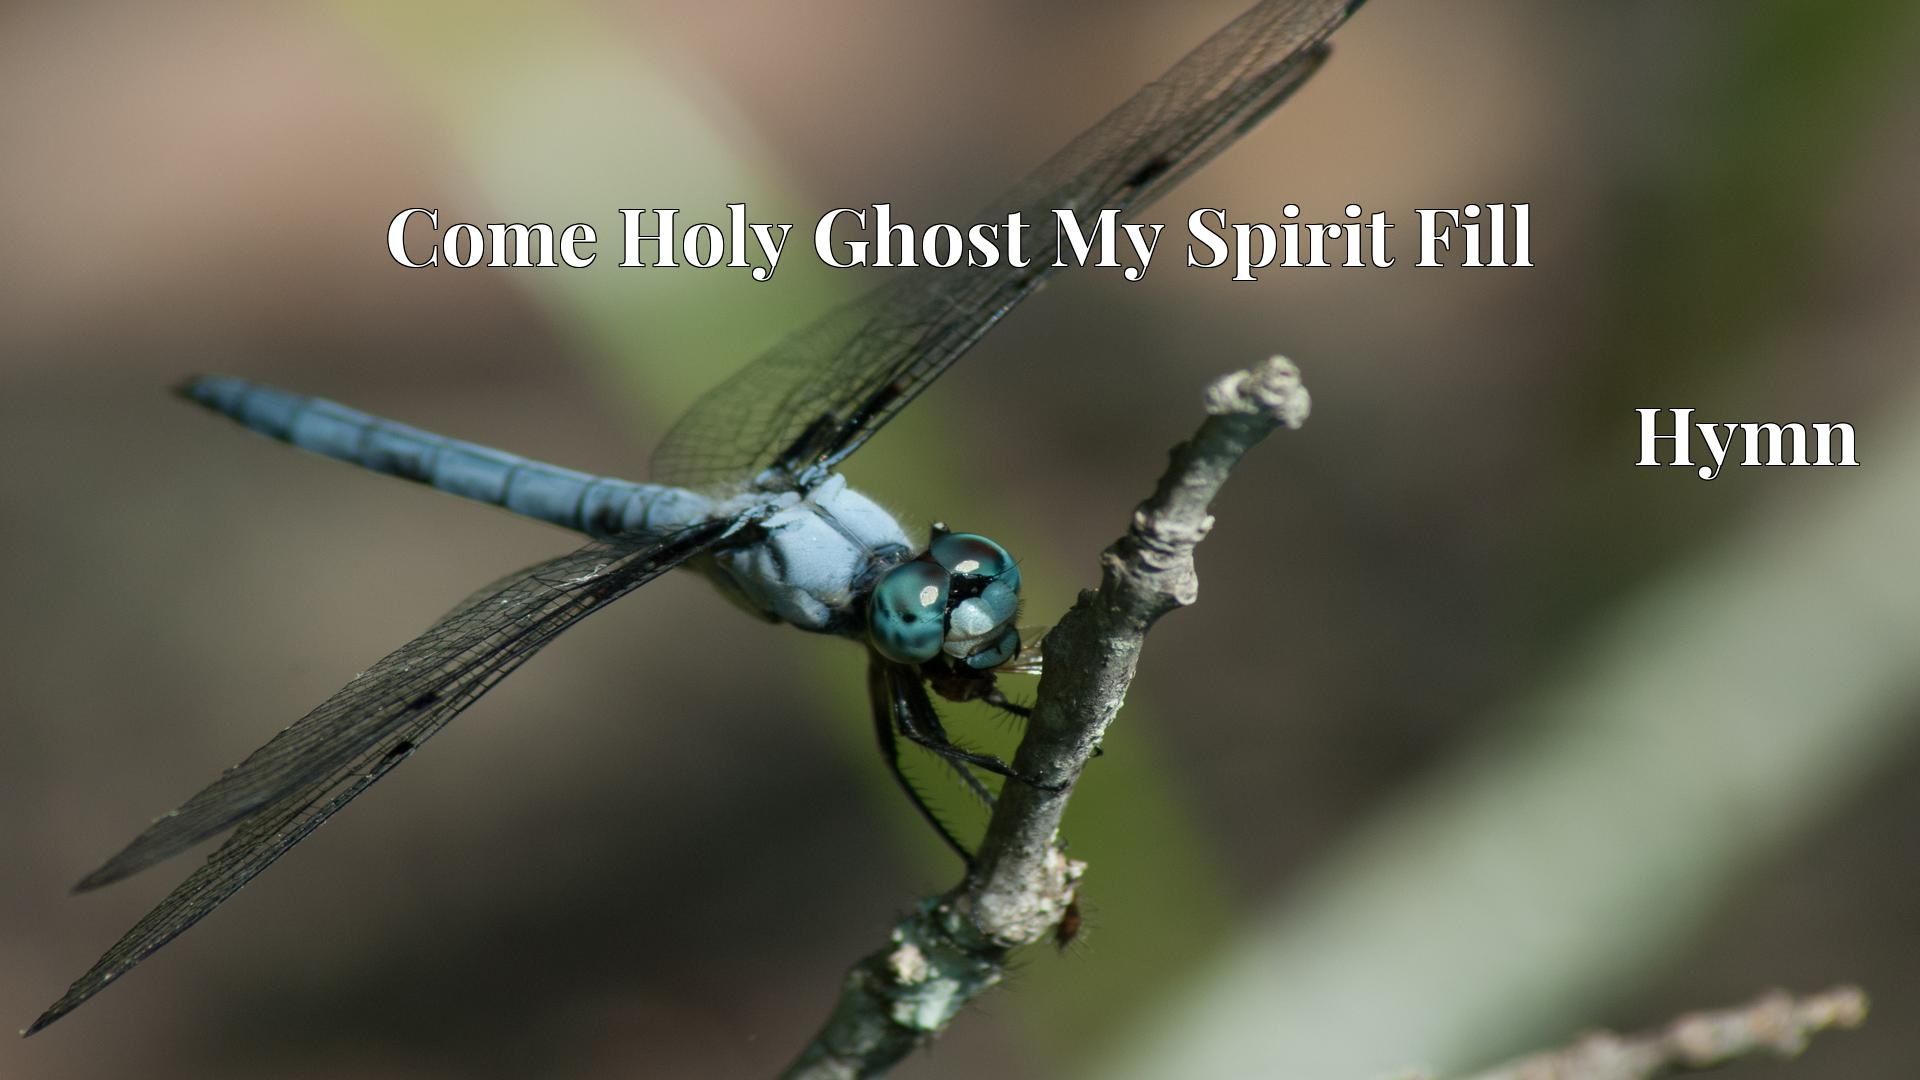 Come Holy Ghost My Spirit Fill - Hymn